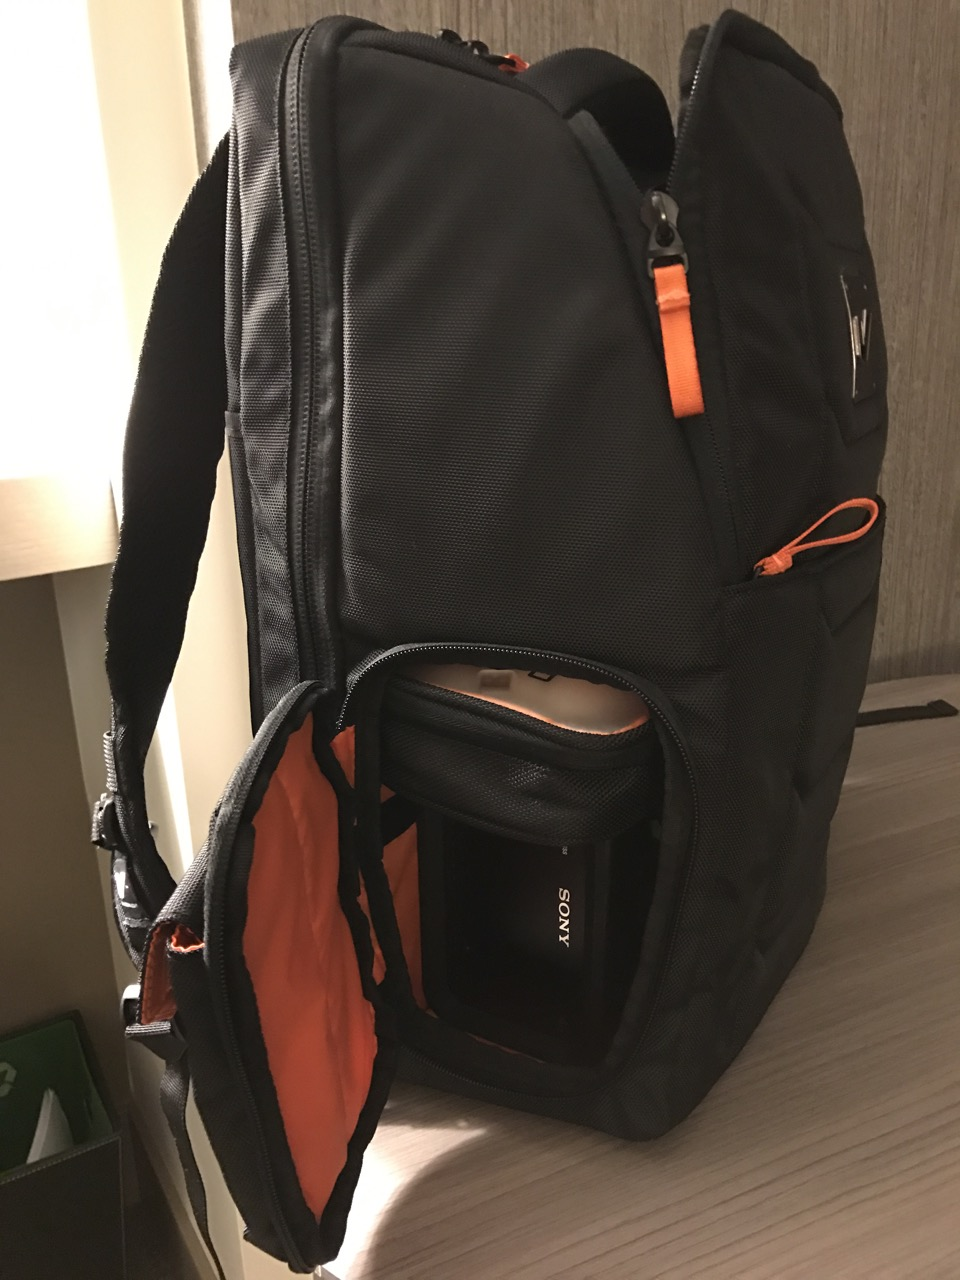 That's a Sony Rugged RAID peaking out of the bottom compartment. With a Macbook Pro in the bag it's an all-in-one editing go-bag.